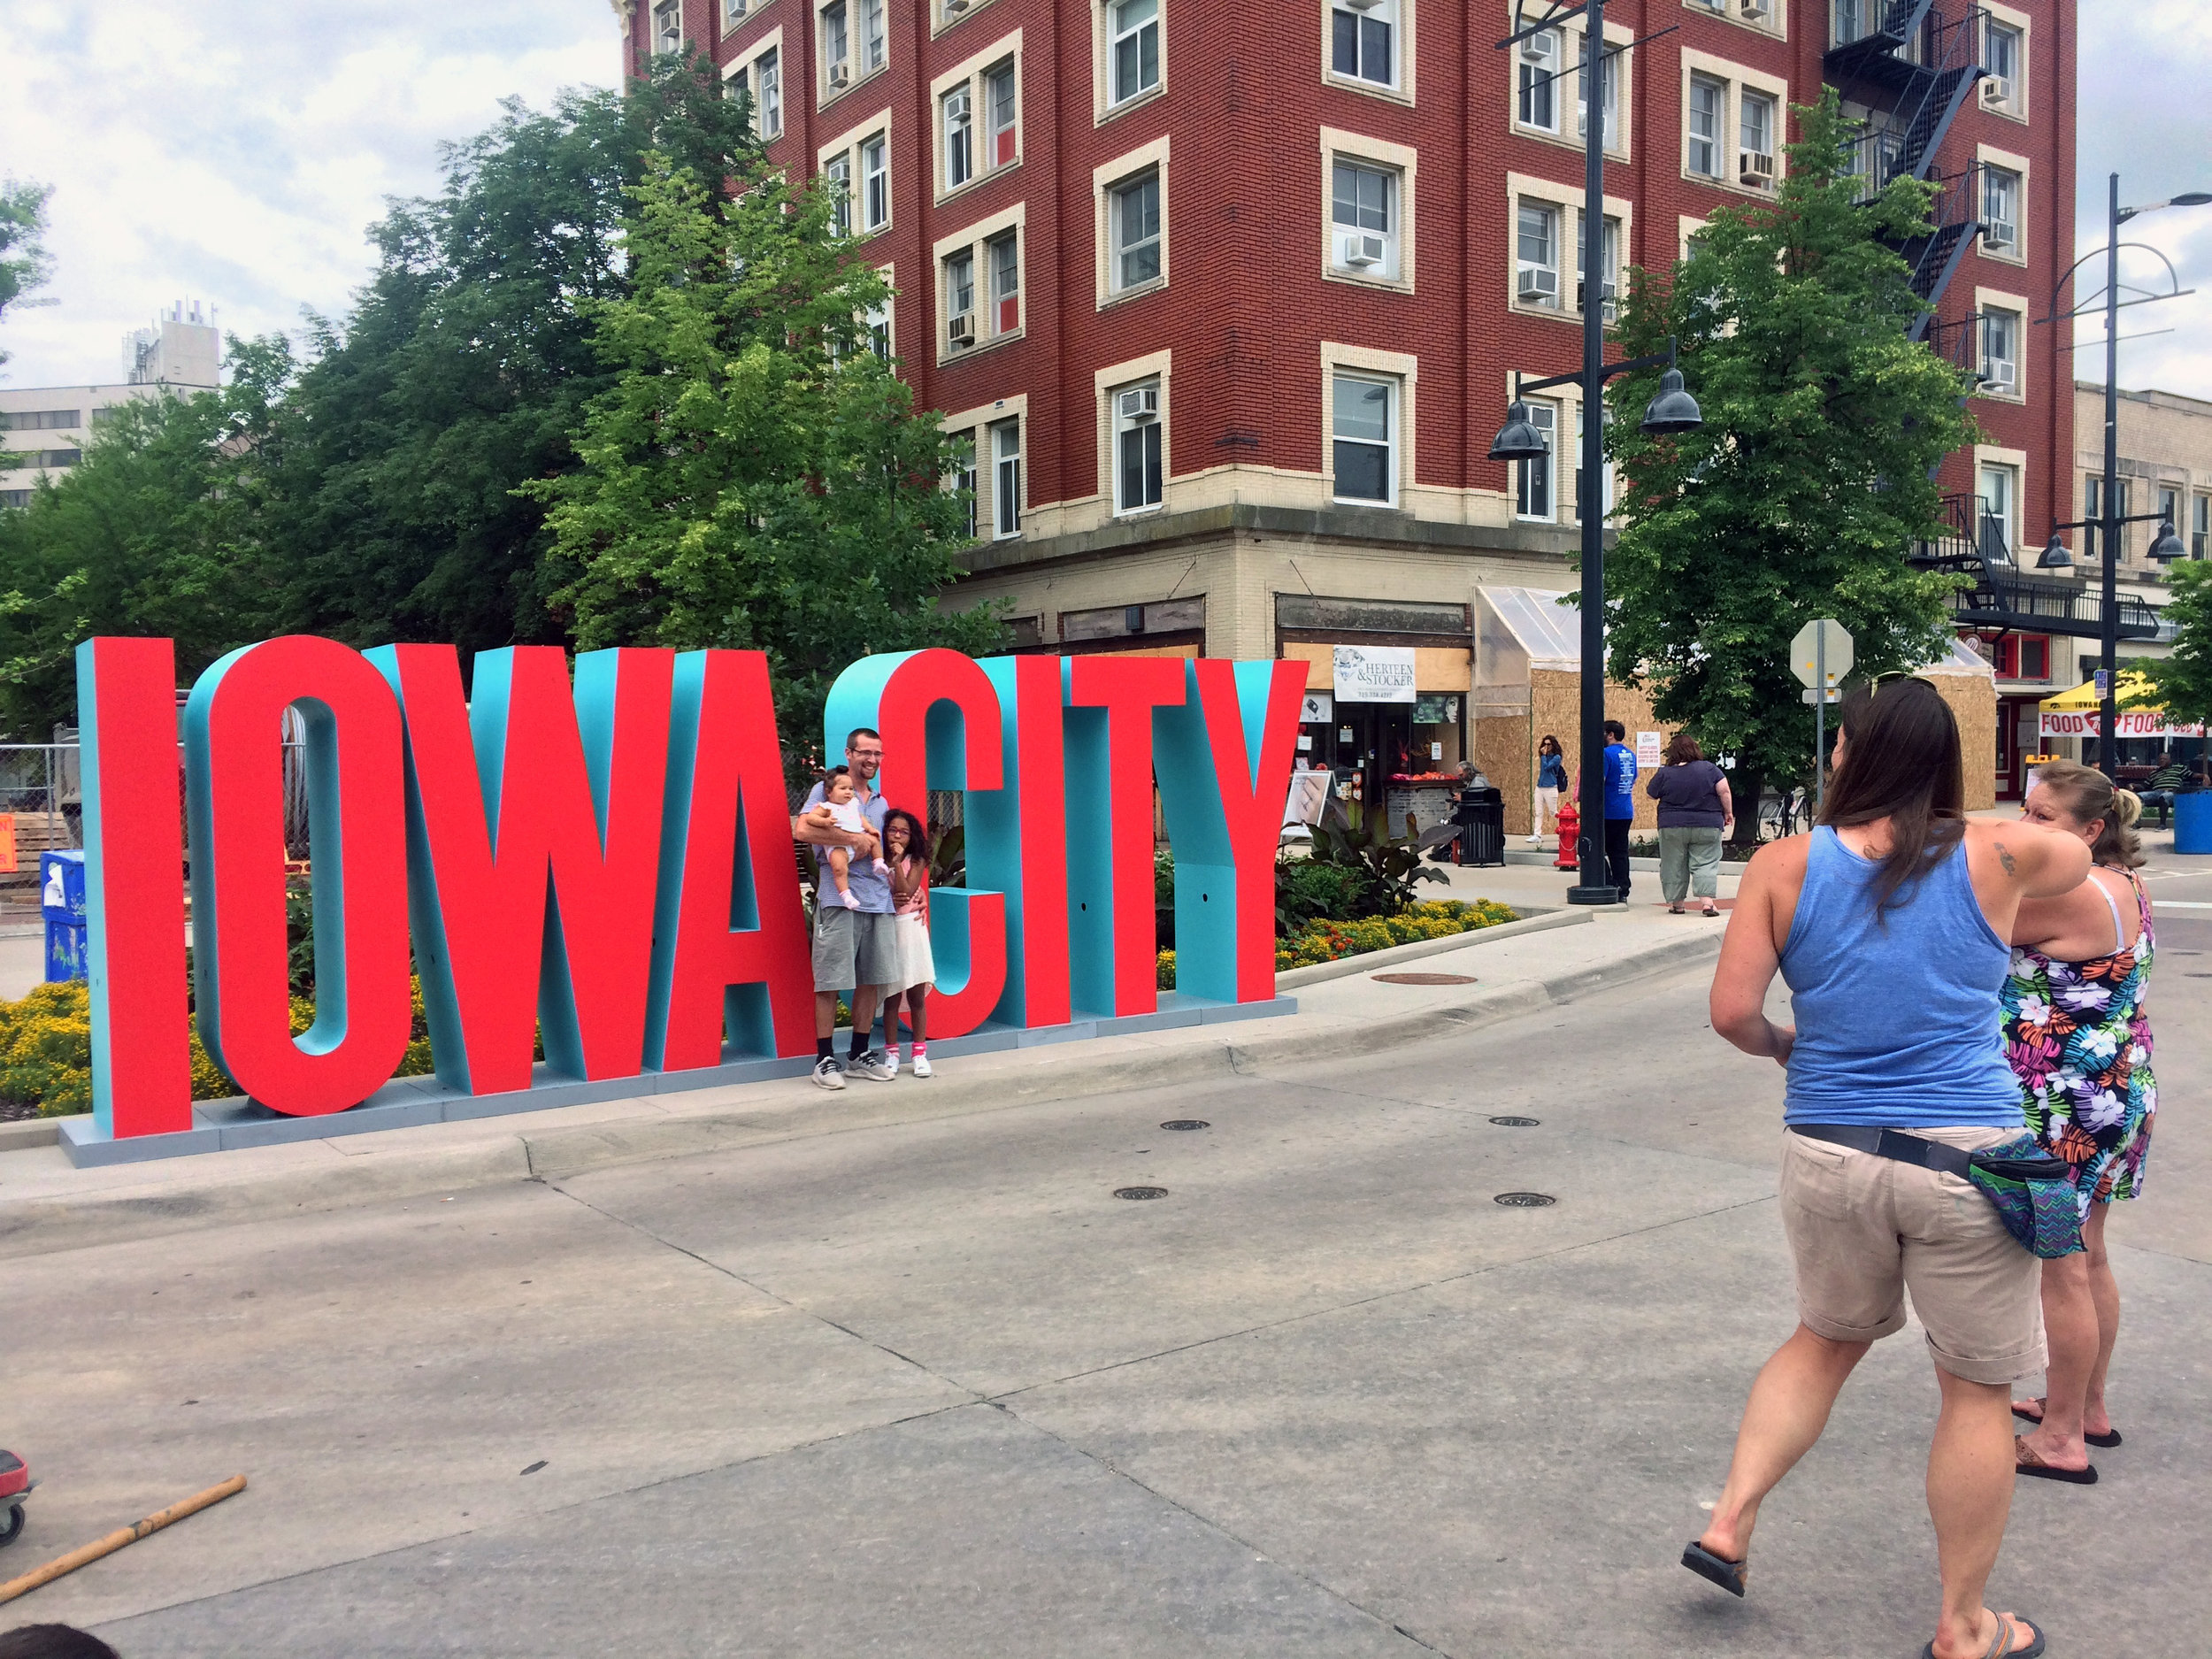 Iowa City letters built for the Iowa City Downtown Block Party in 2018.